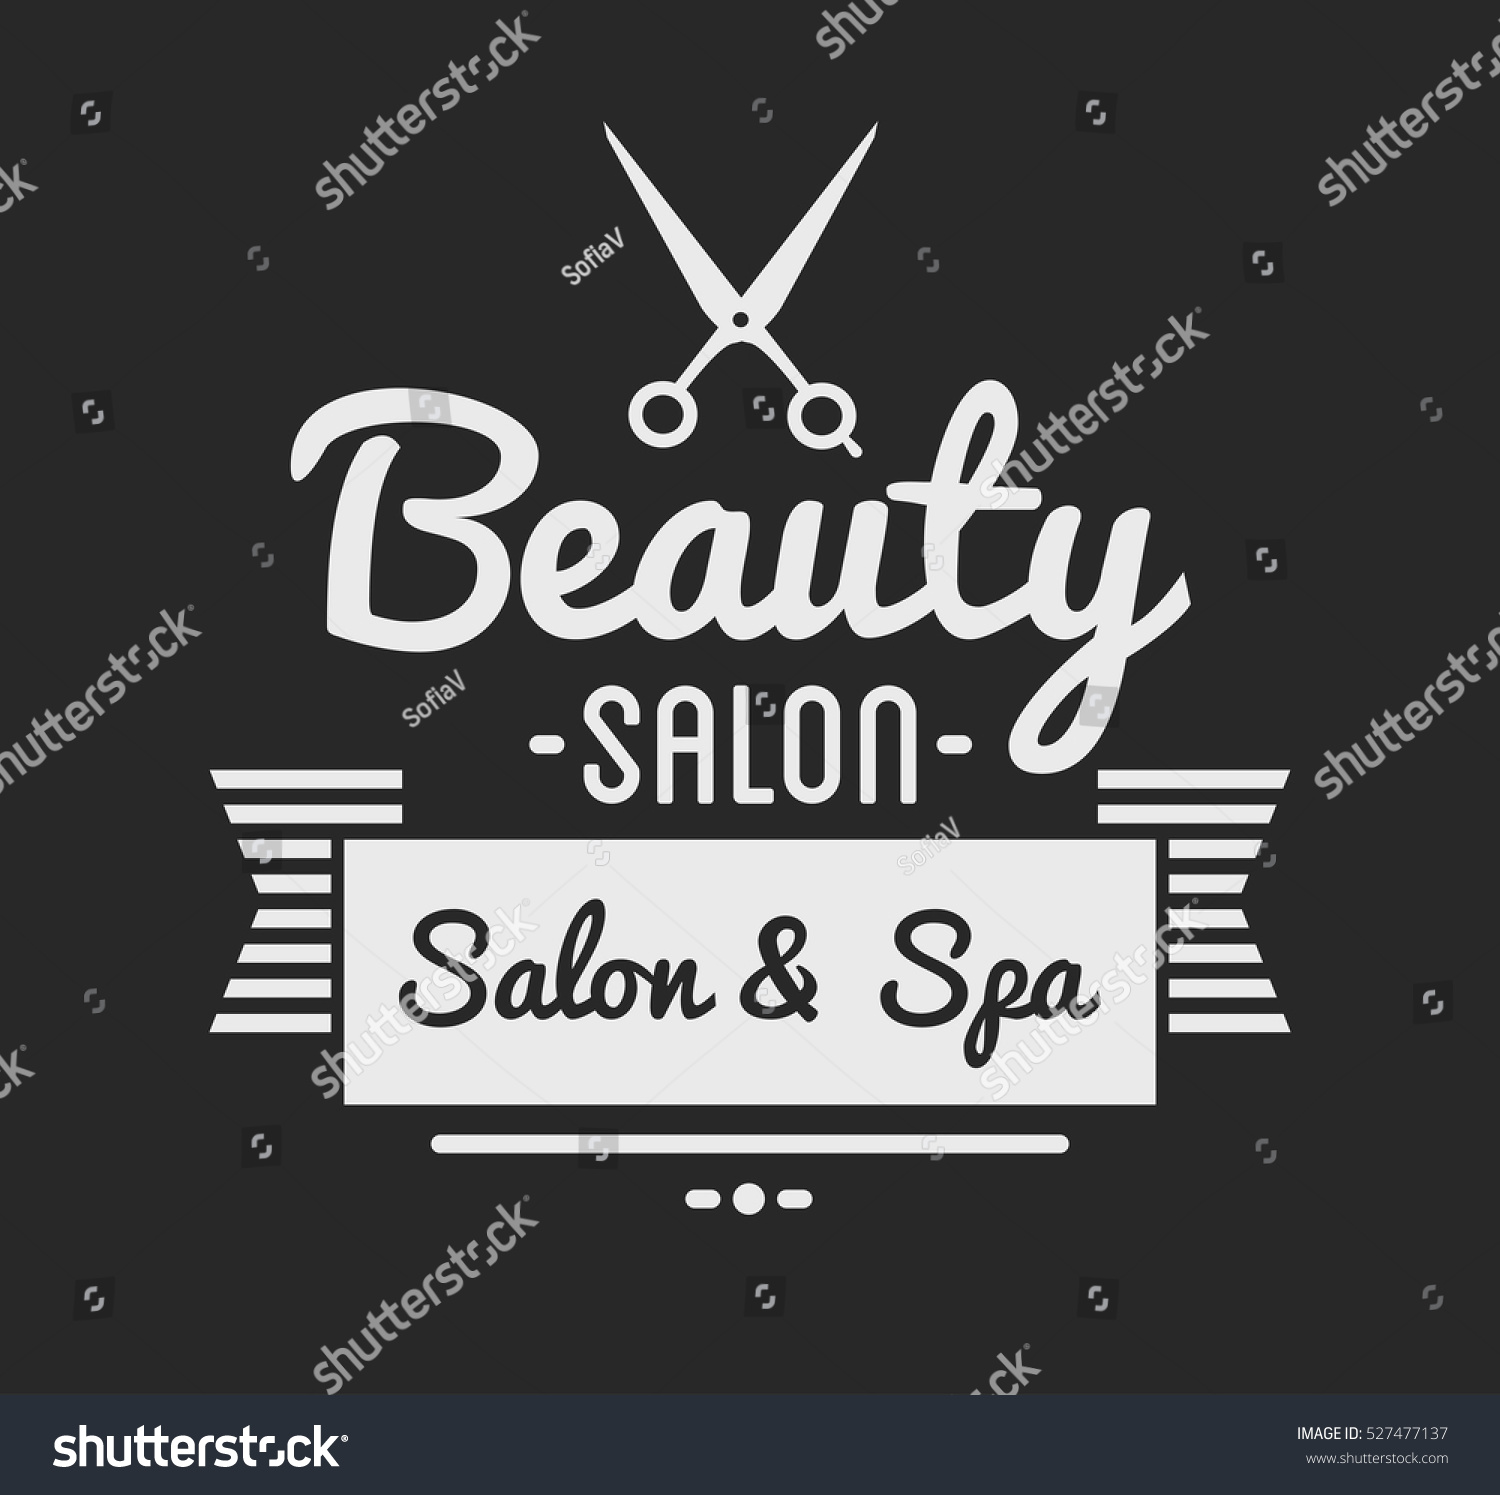 Clip art vector of vintage barber shop logo graphics and icon vector - Vintage Barber Shop Logo And Beauty Spa Salon Badge Vector Element Isolated Icons On